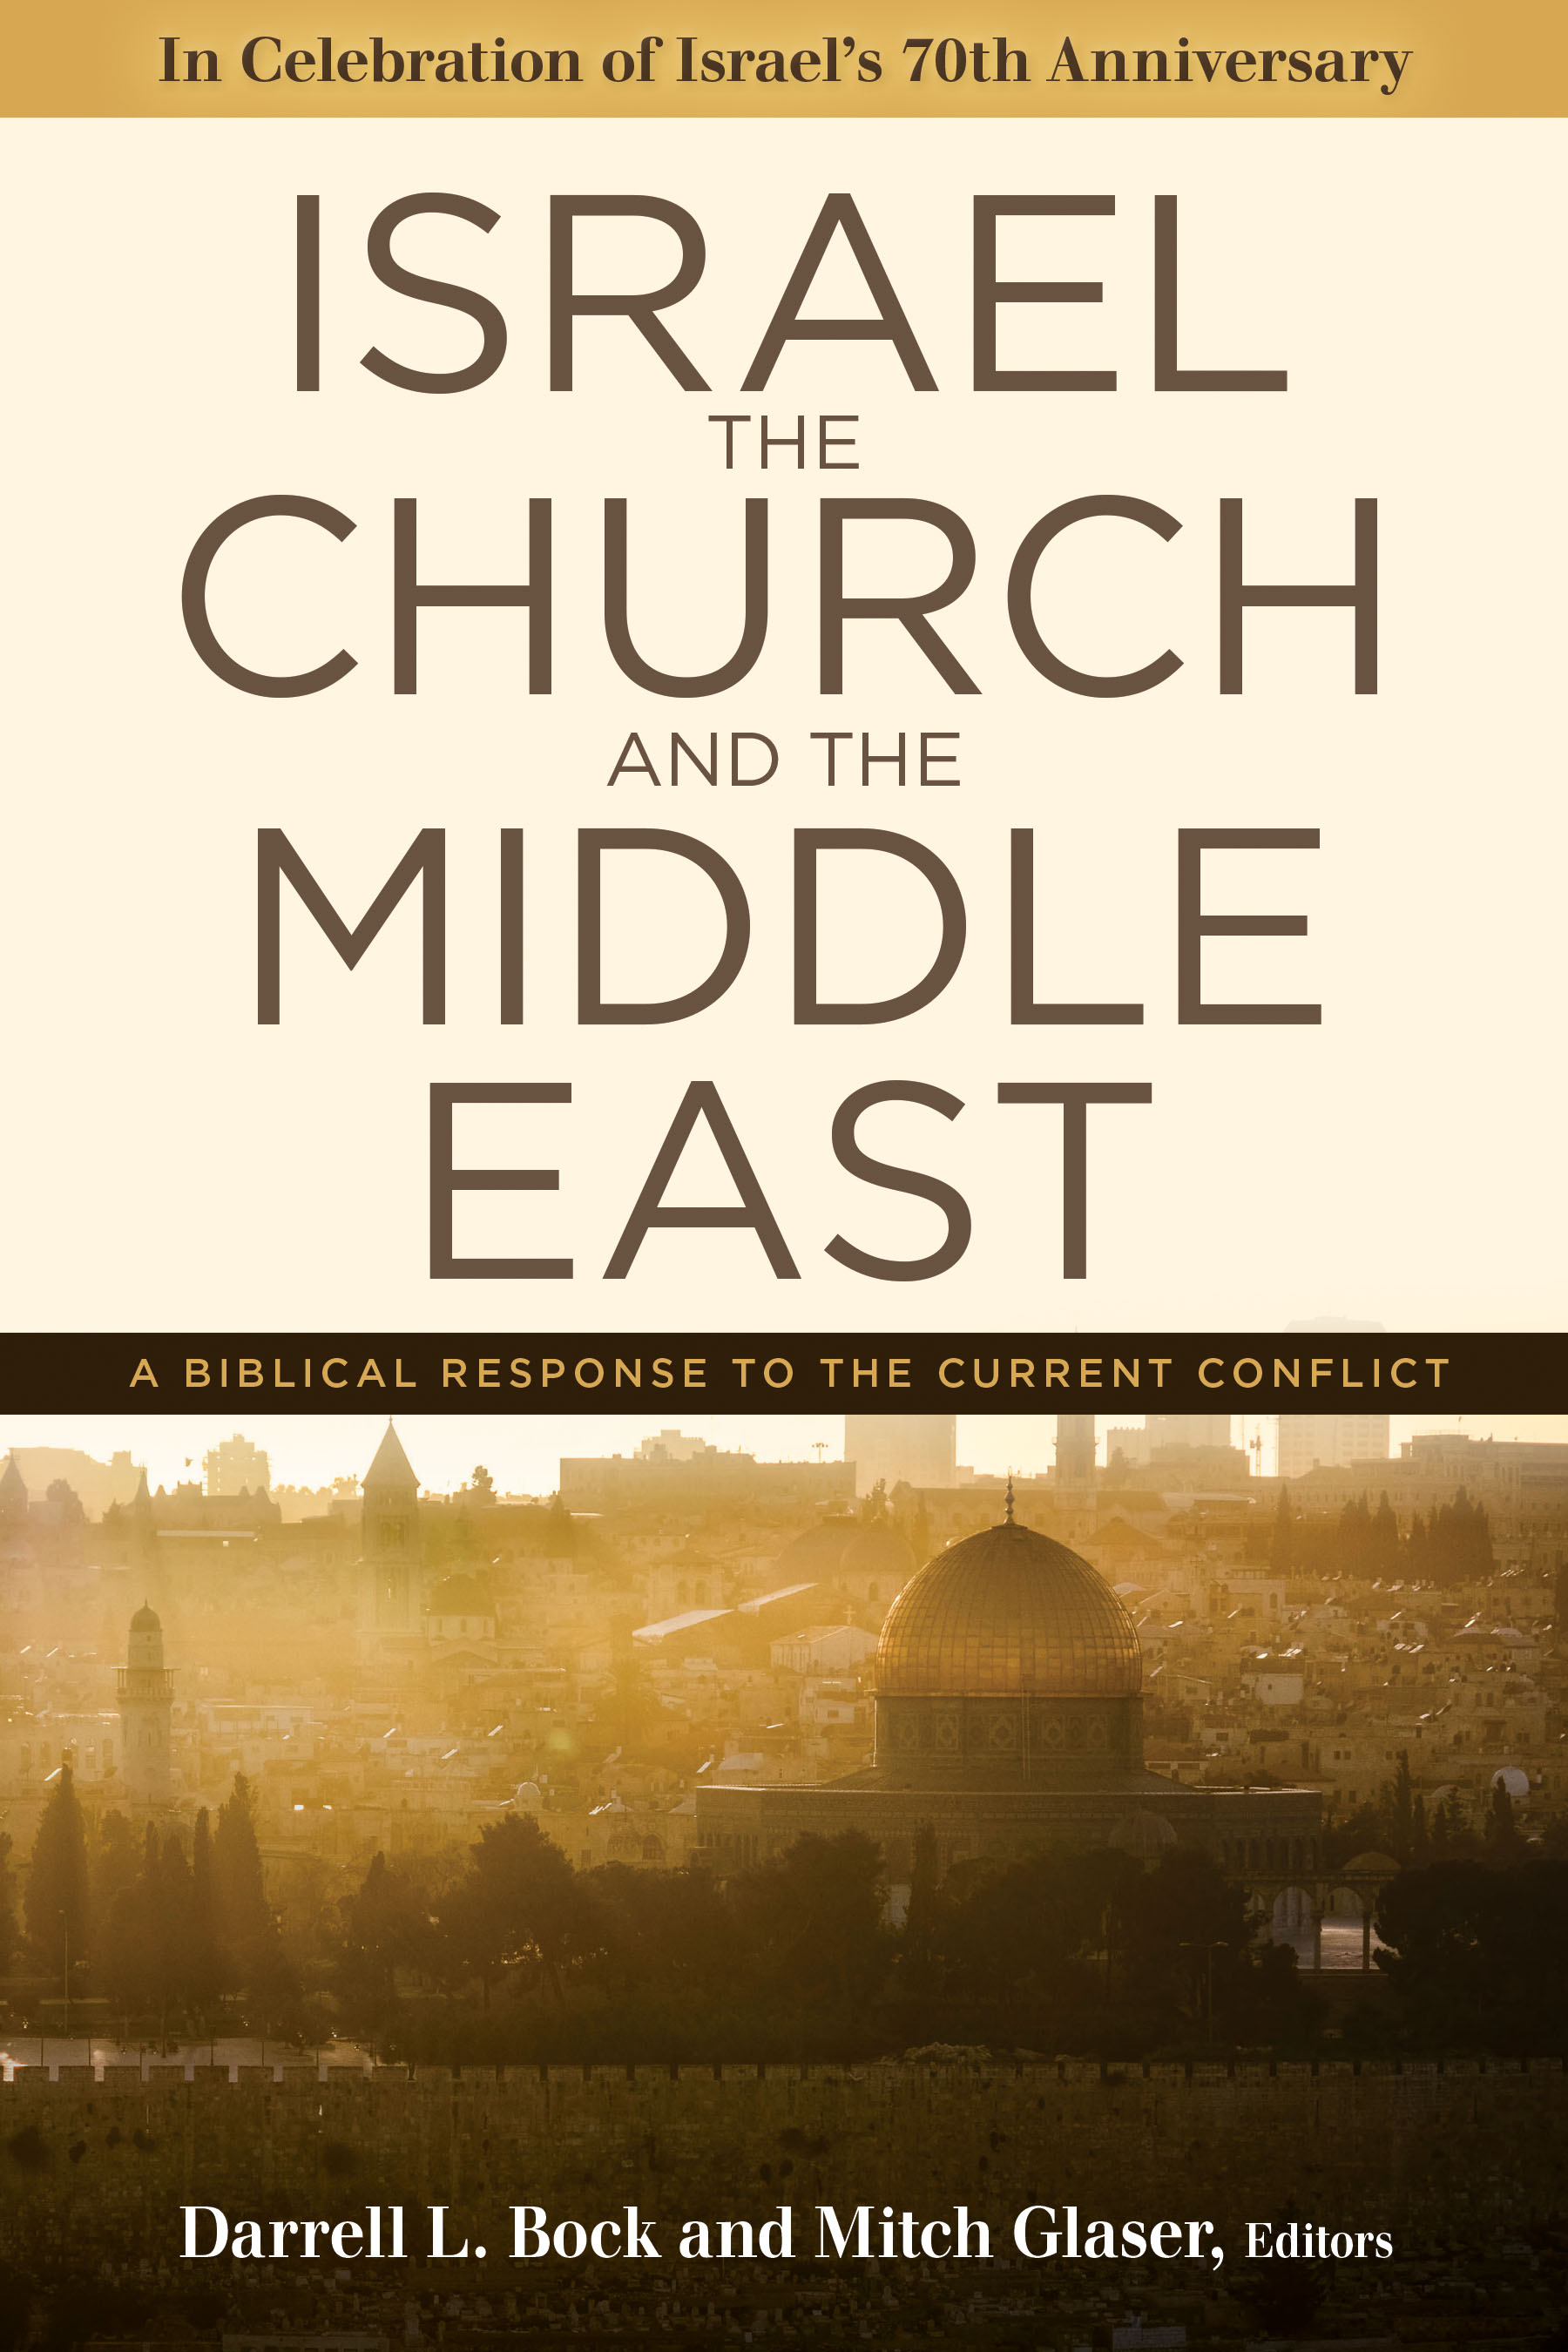 Israel, the Church, and the Middle East